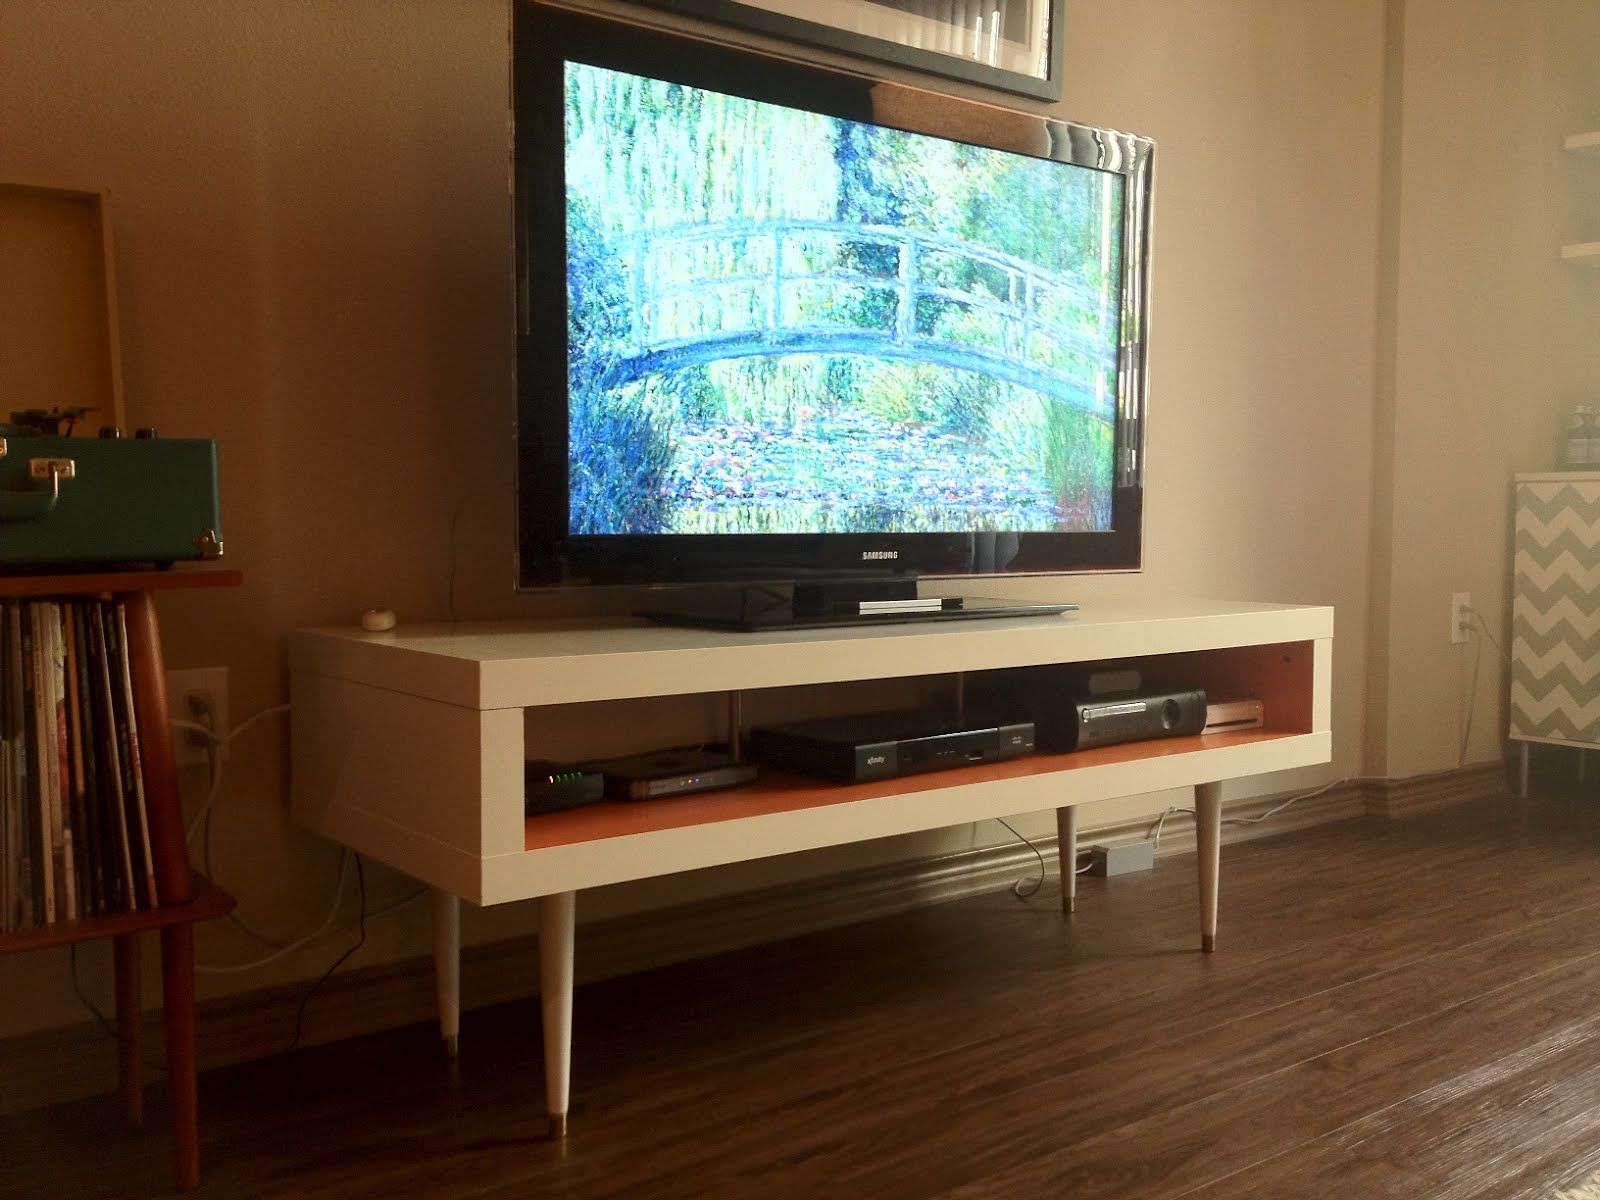 Tv Kast Wit Ikea Lack.Mid Century Lack Tv Hack Hotelbed Entertainment Center Decor